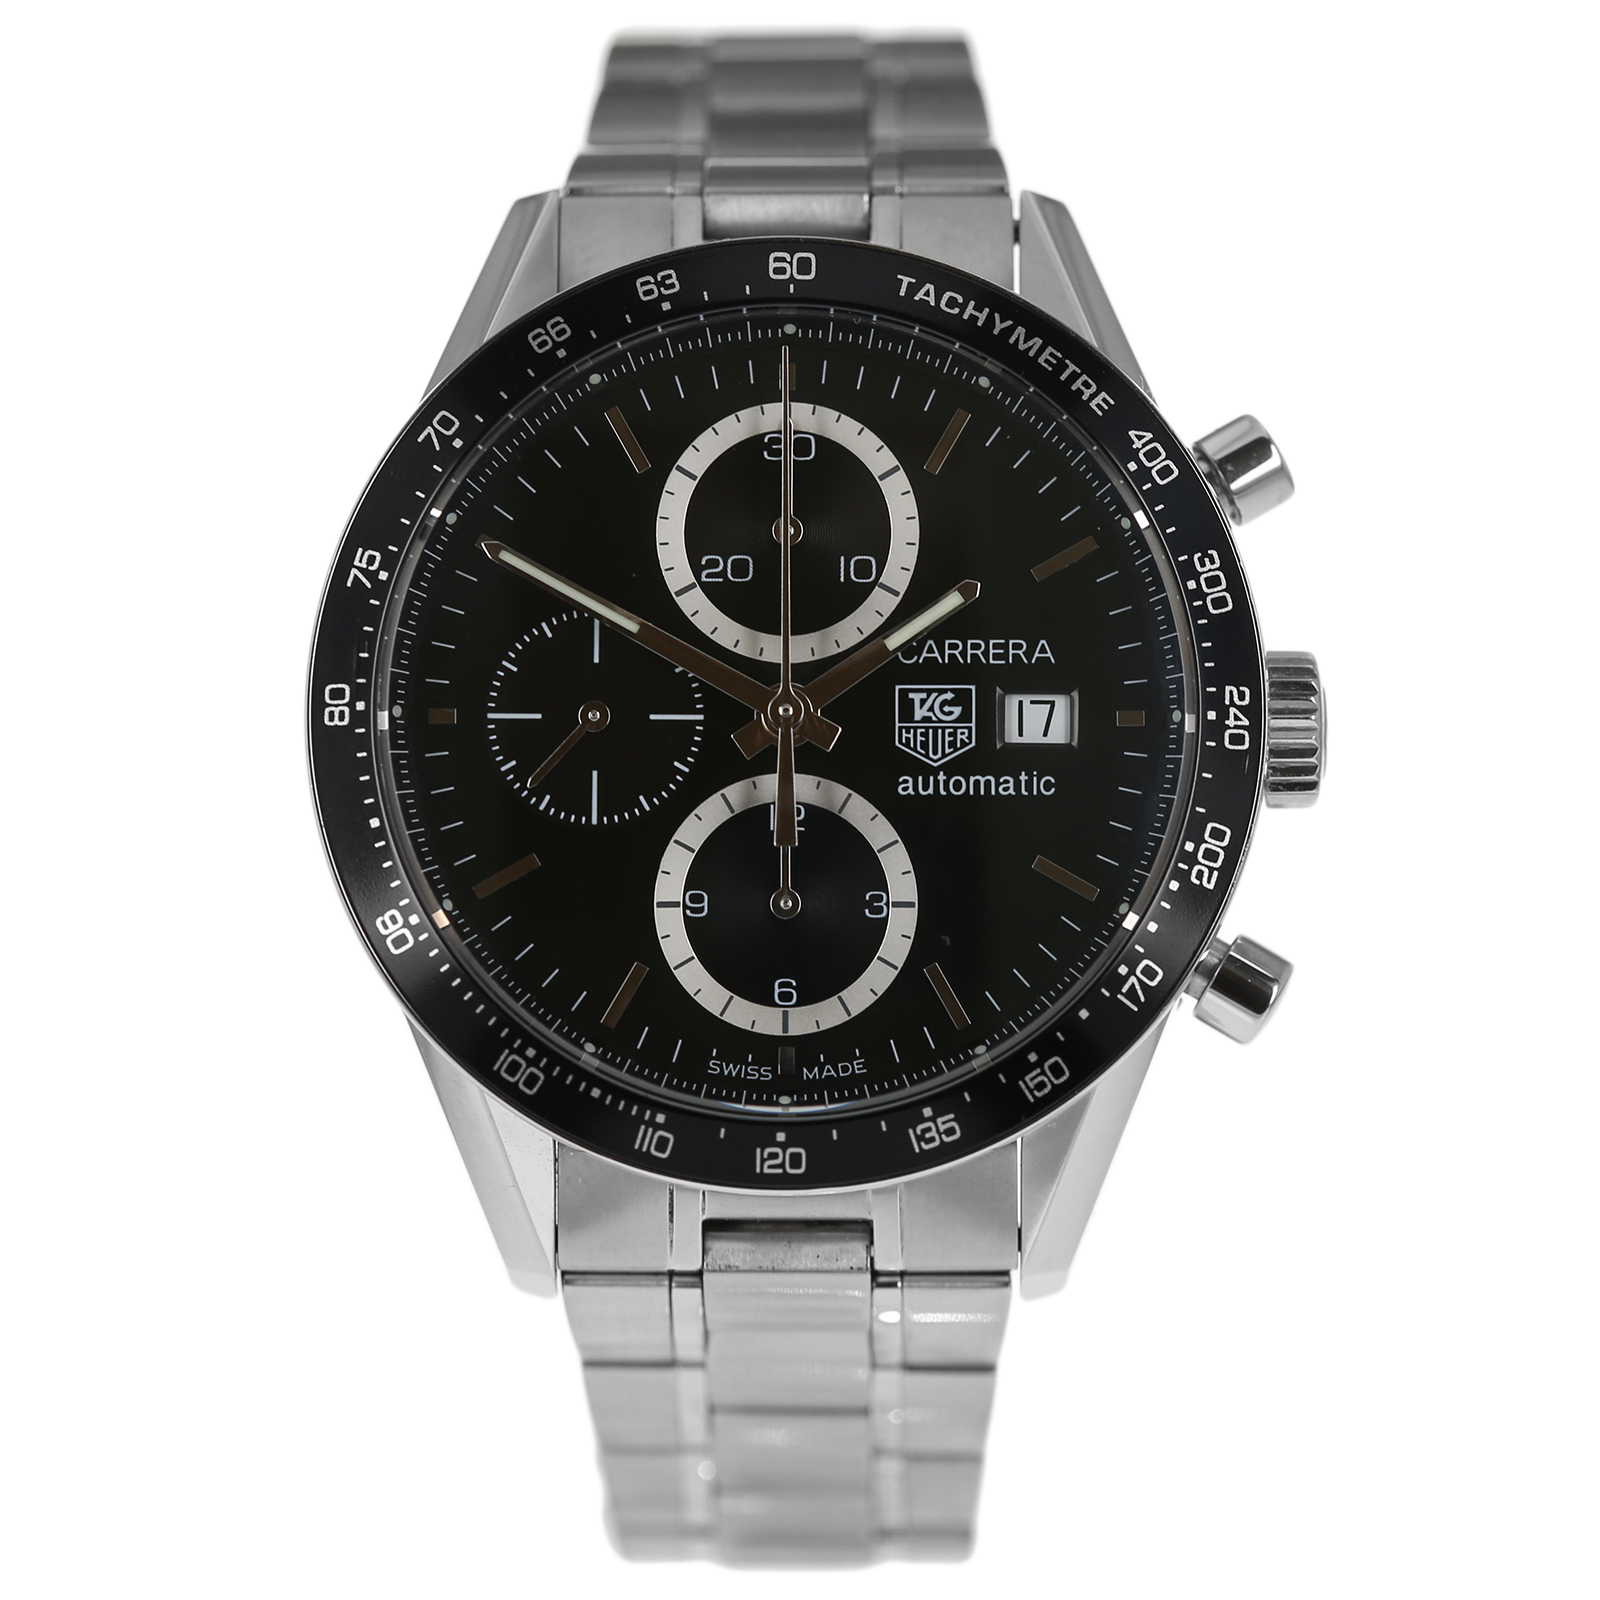 7b28bc793d902 Pre-Owned TAG Heuer Carrera Calibre 16 Mens Watch CV2010